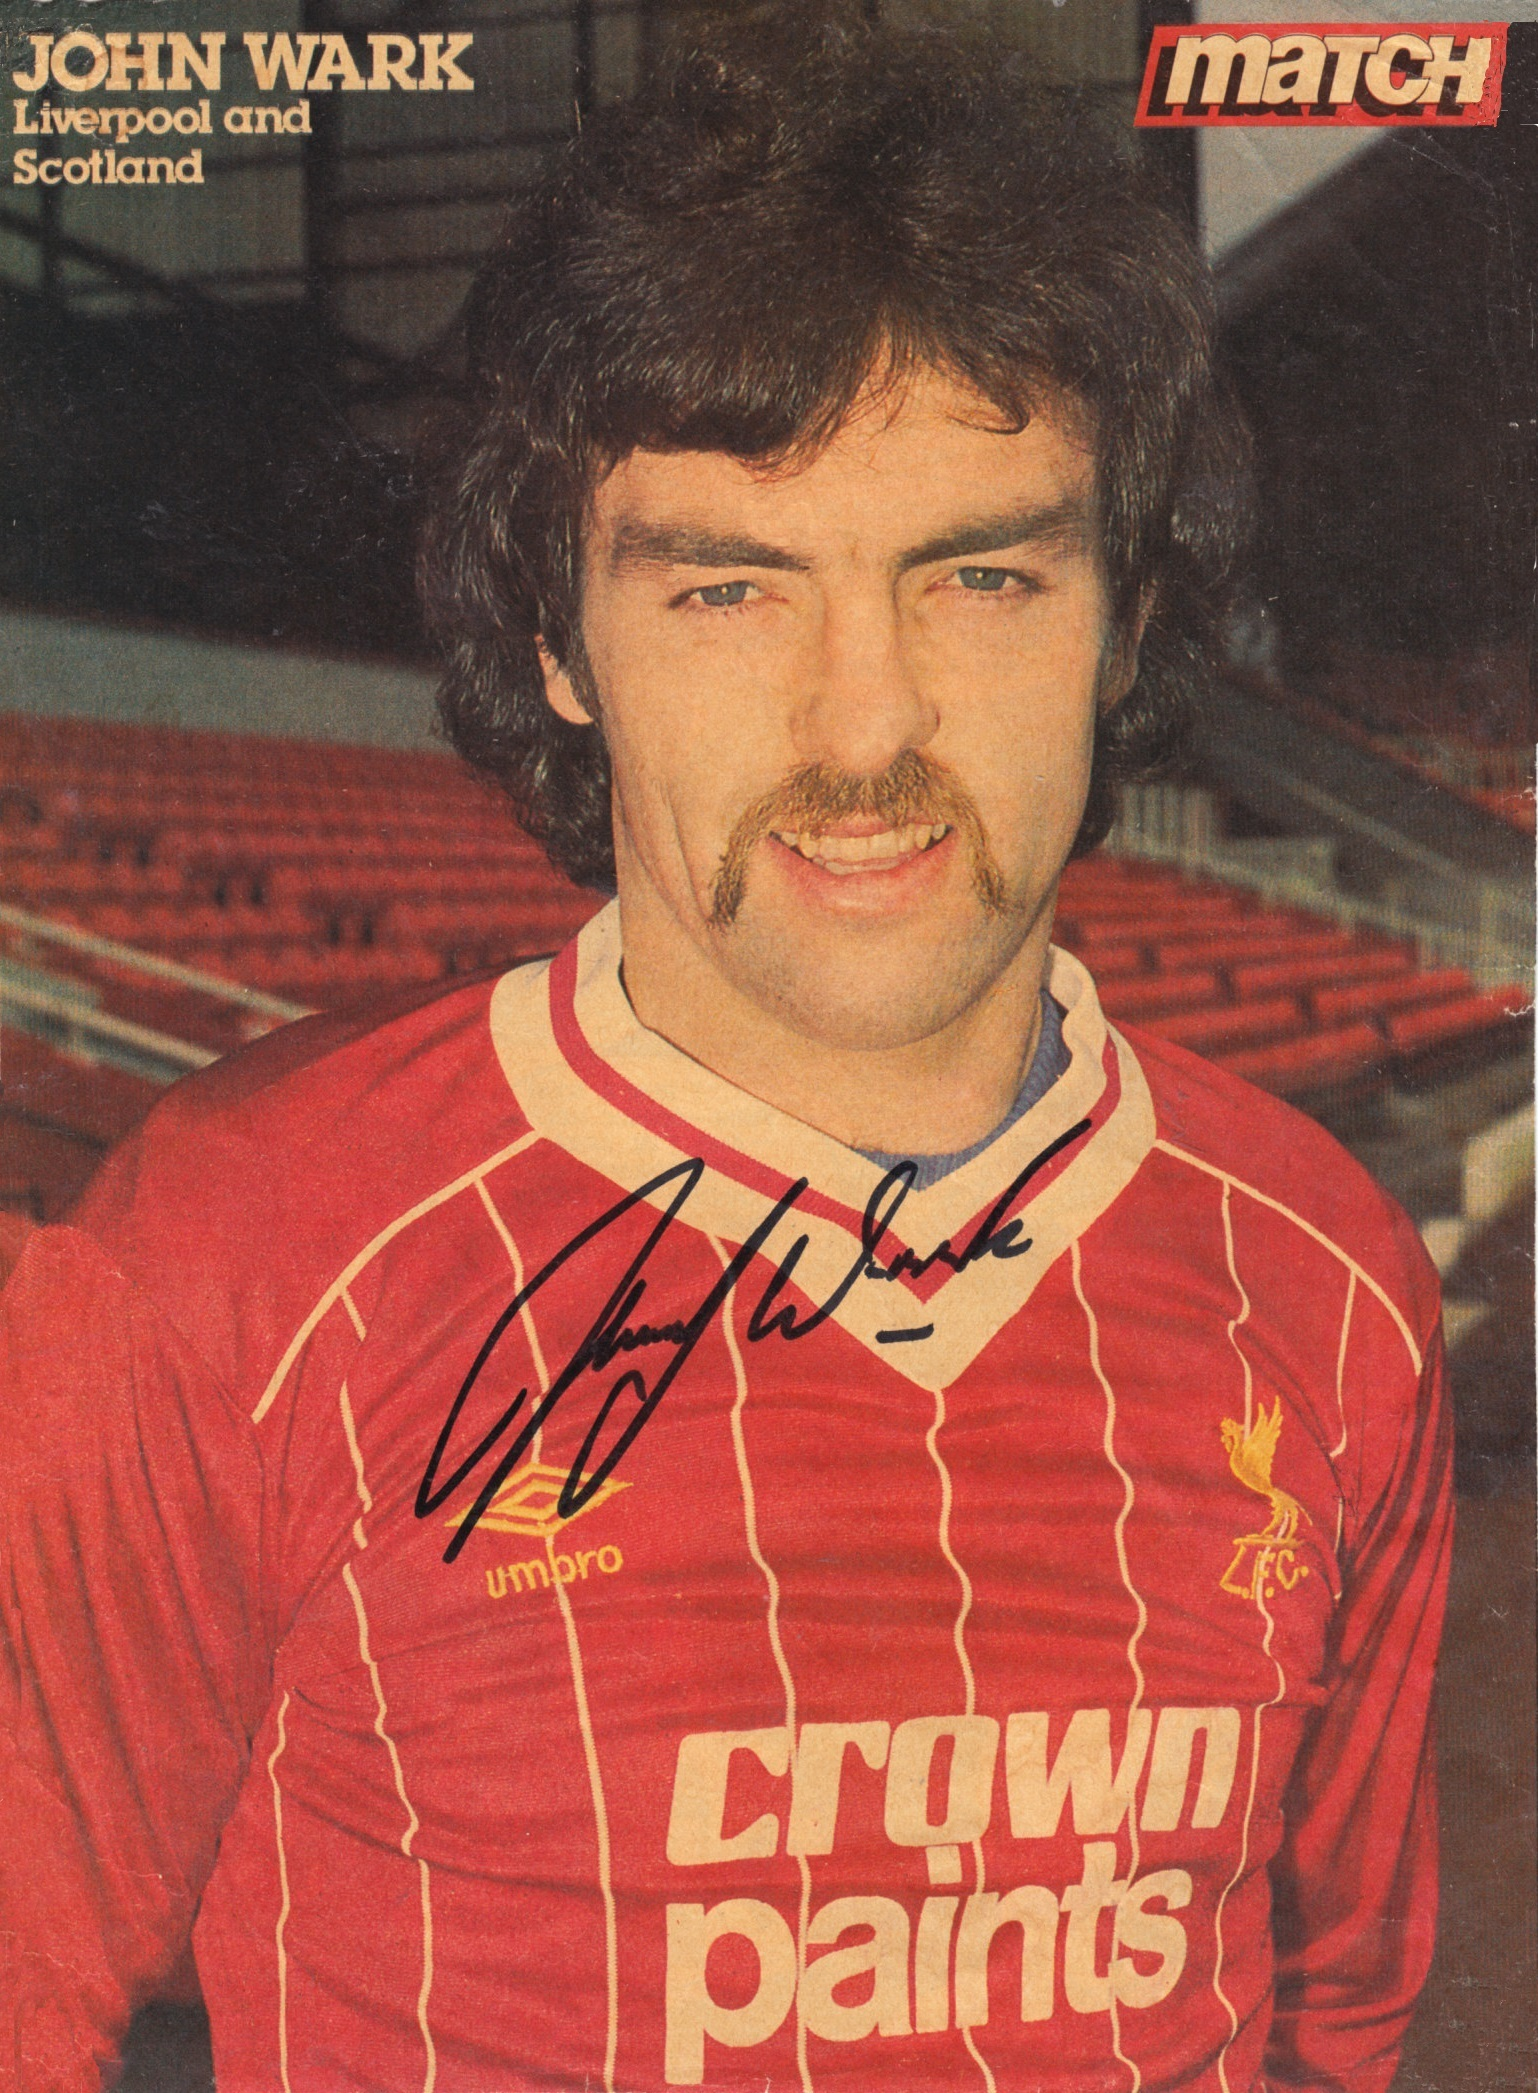 Wark joins Liverpool 10 March 1984